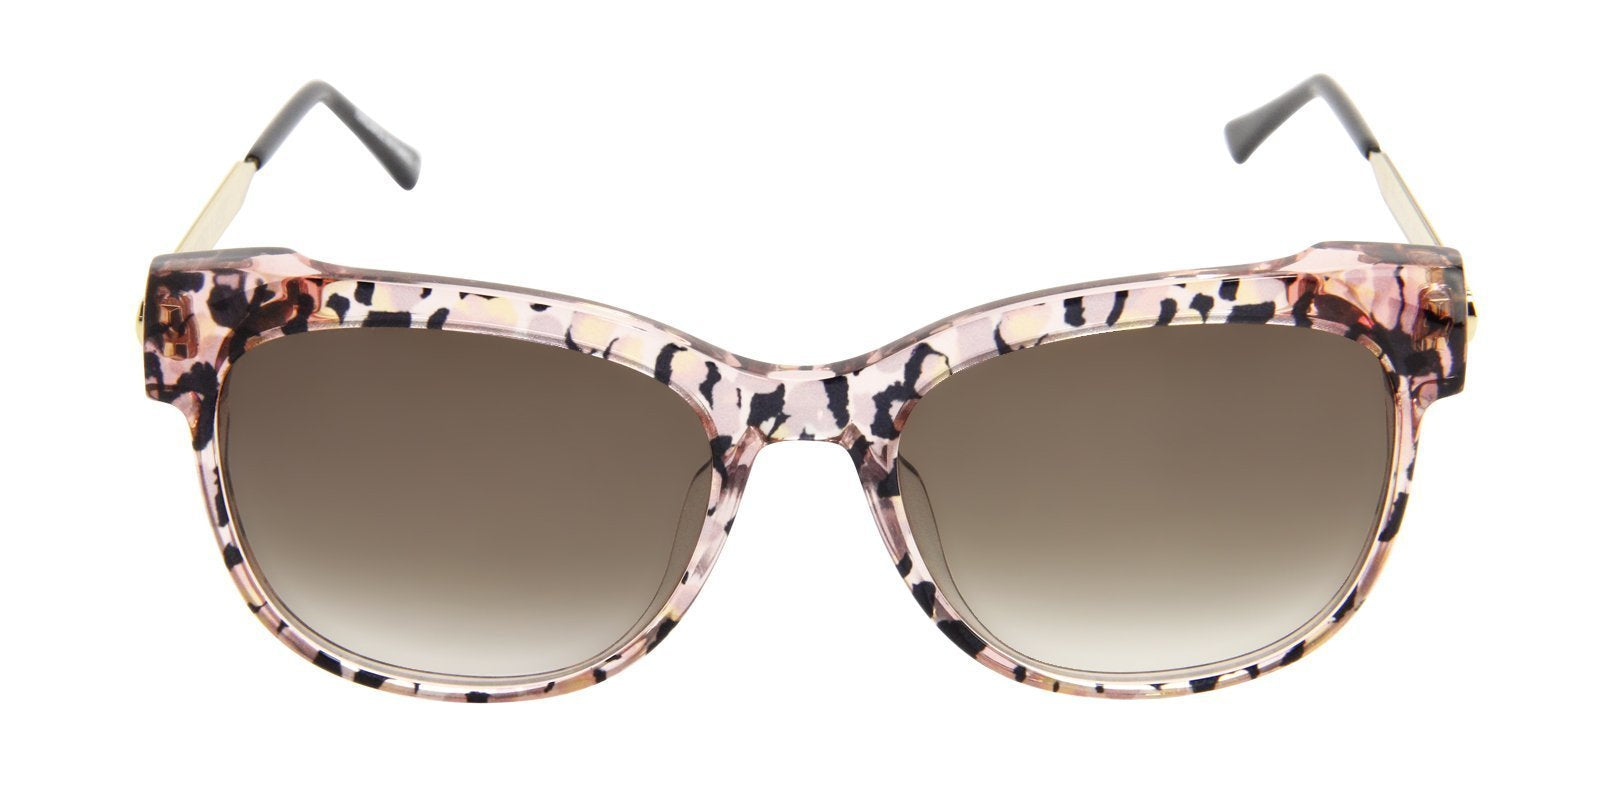 Thierry Lasry - Lippy Pink Oval Women Sunglasses - 56mm-Sunglasses-Designer Eyes